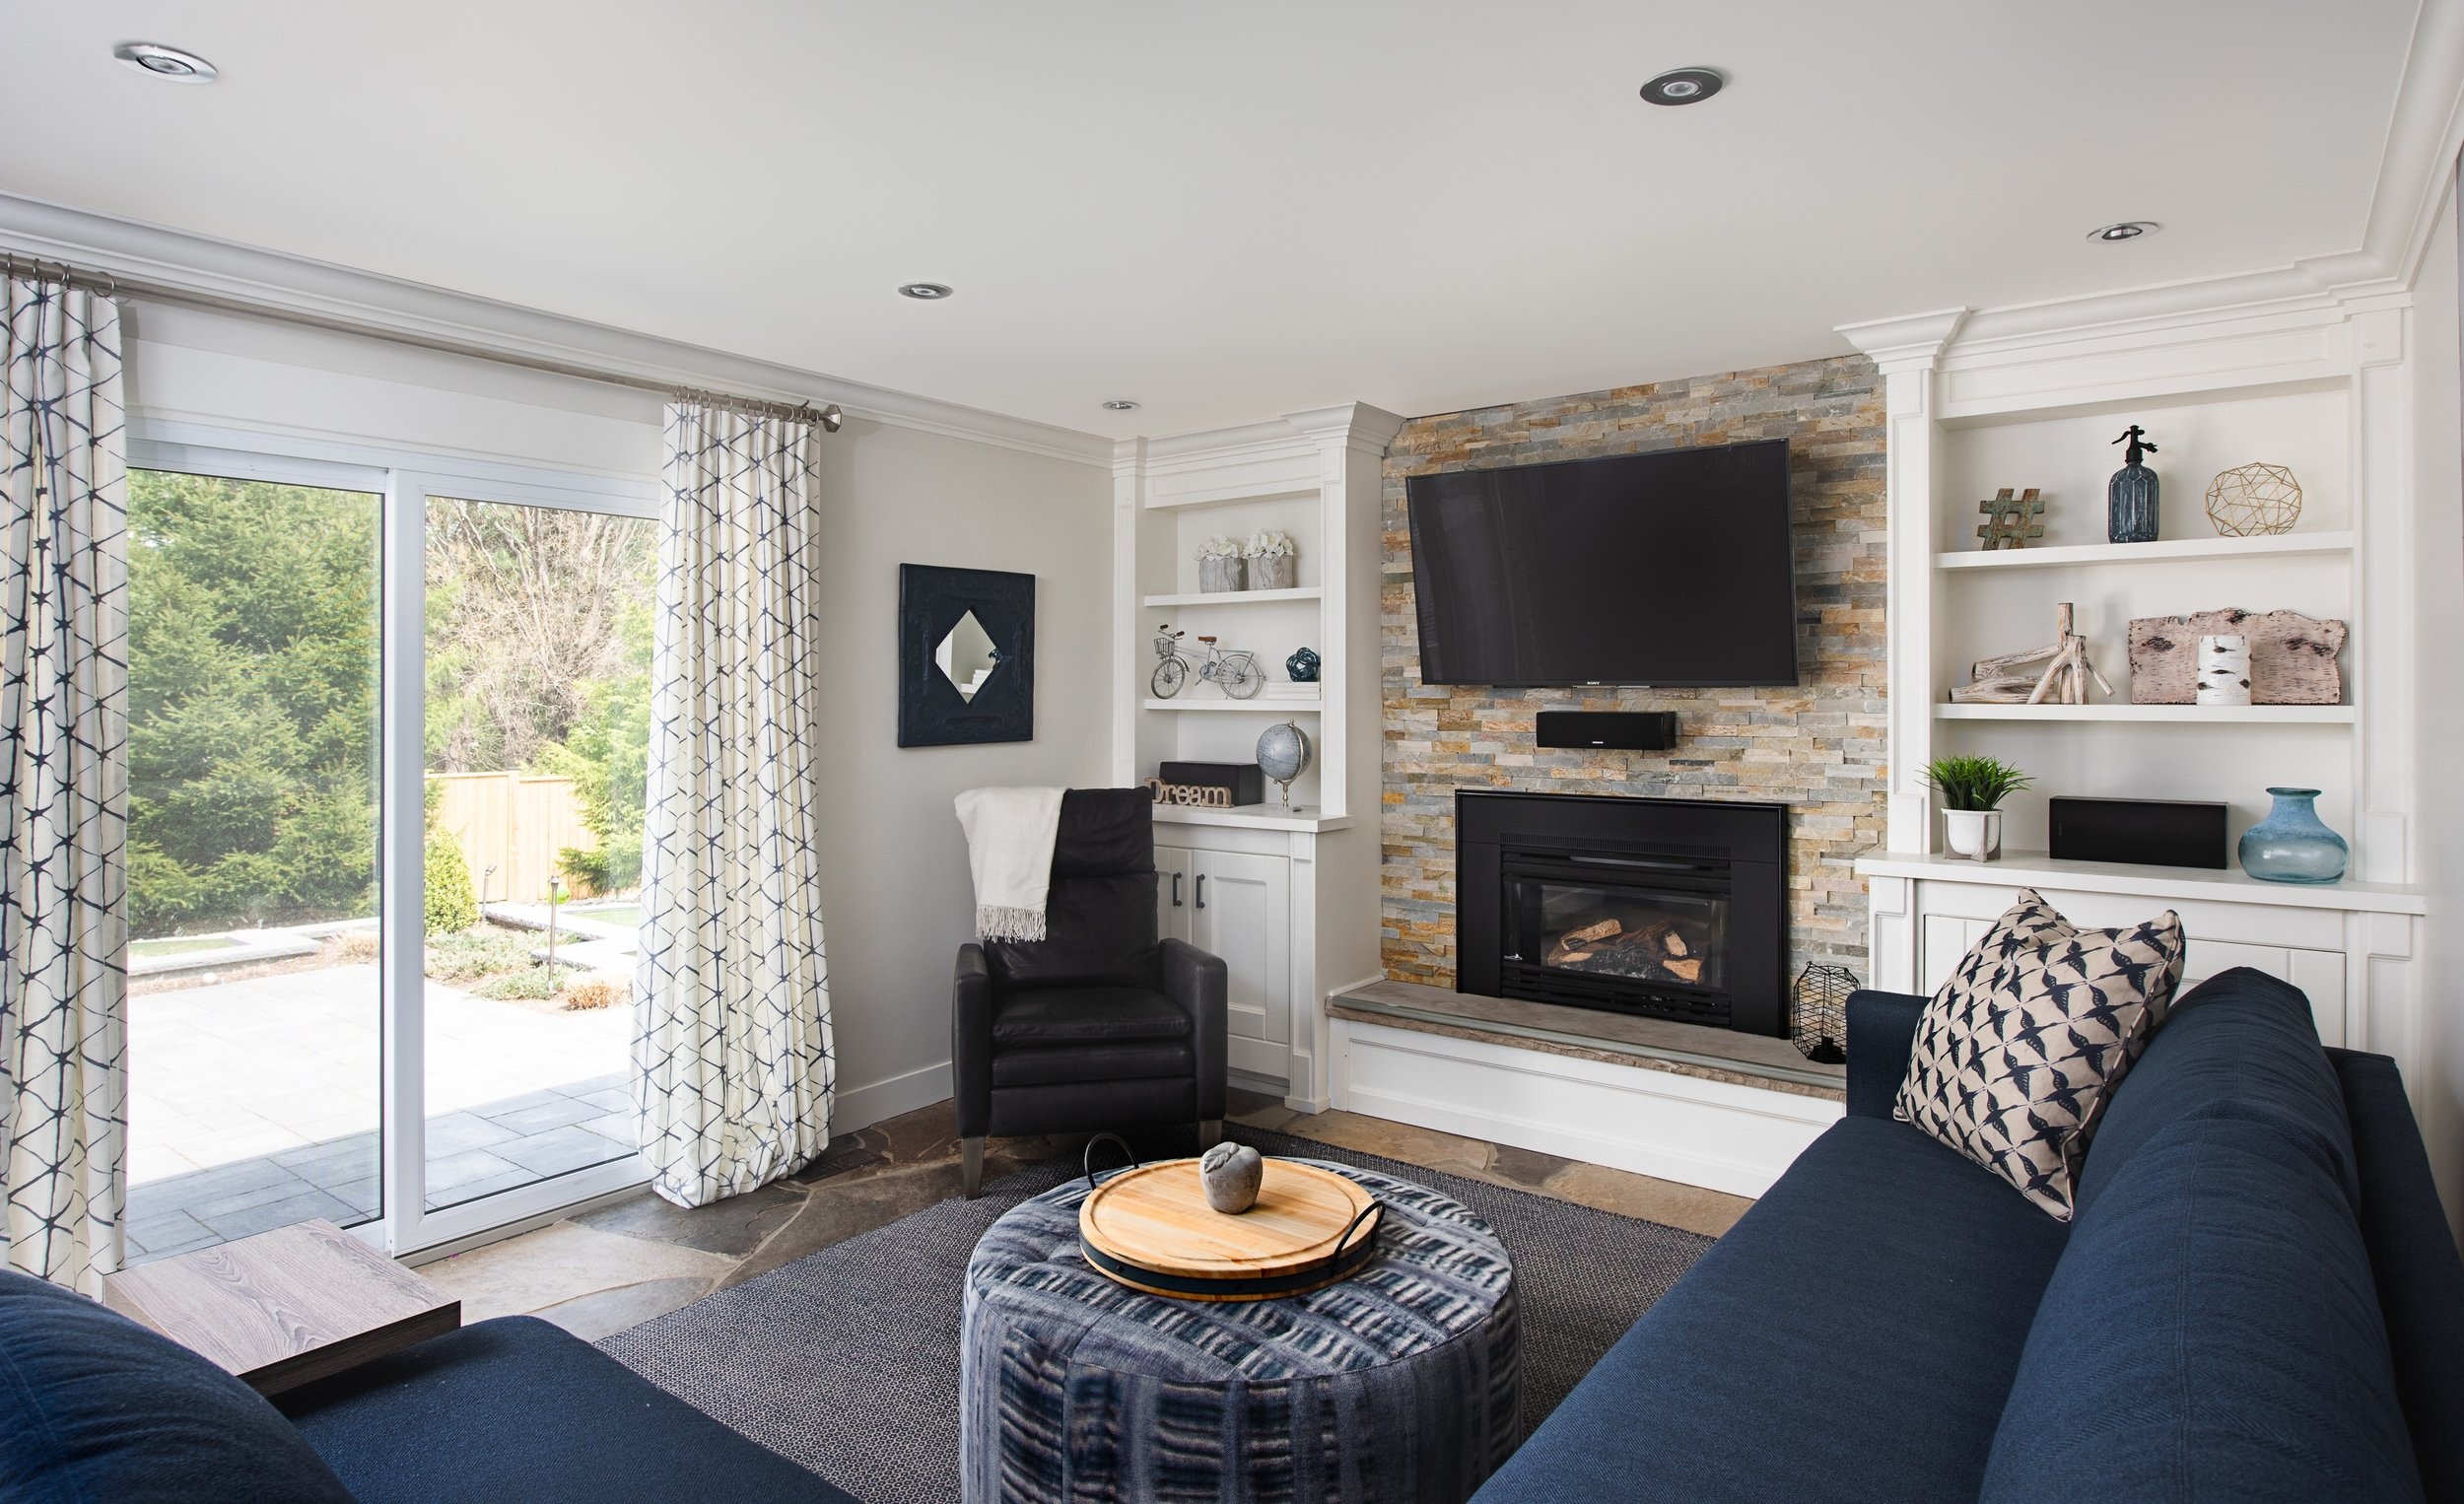 RECESSED LED POT LIGHTS IS ALL THIS COZY FAMILY ROOM NEEDS.